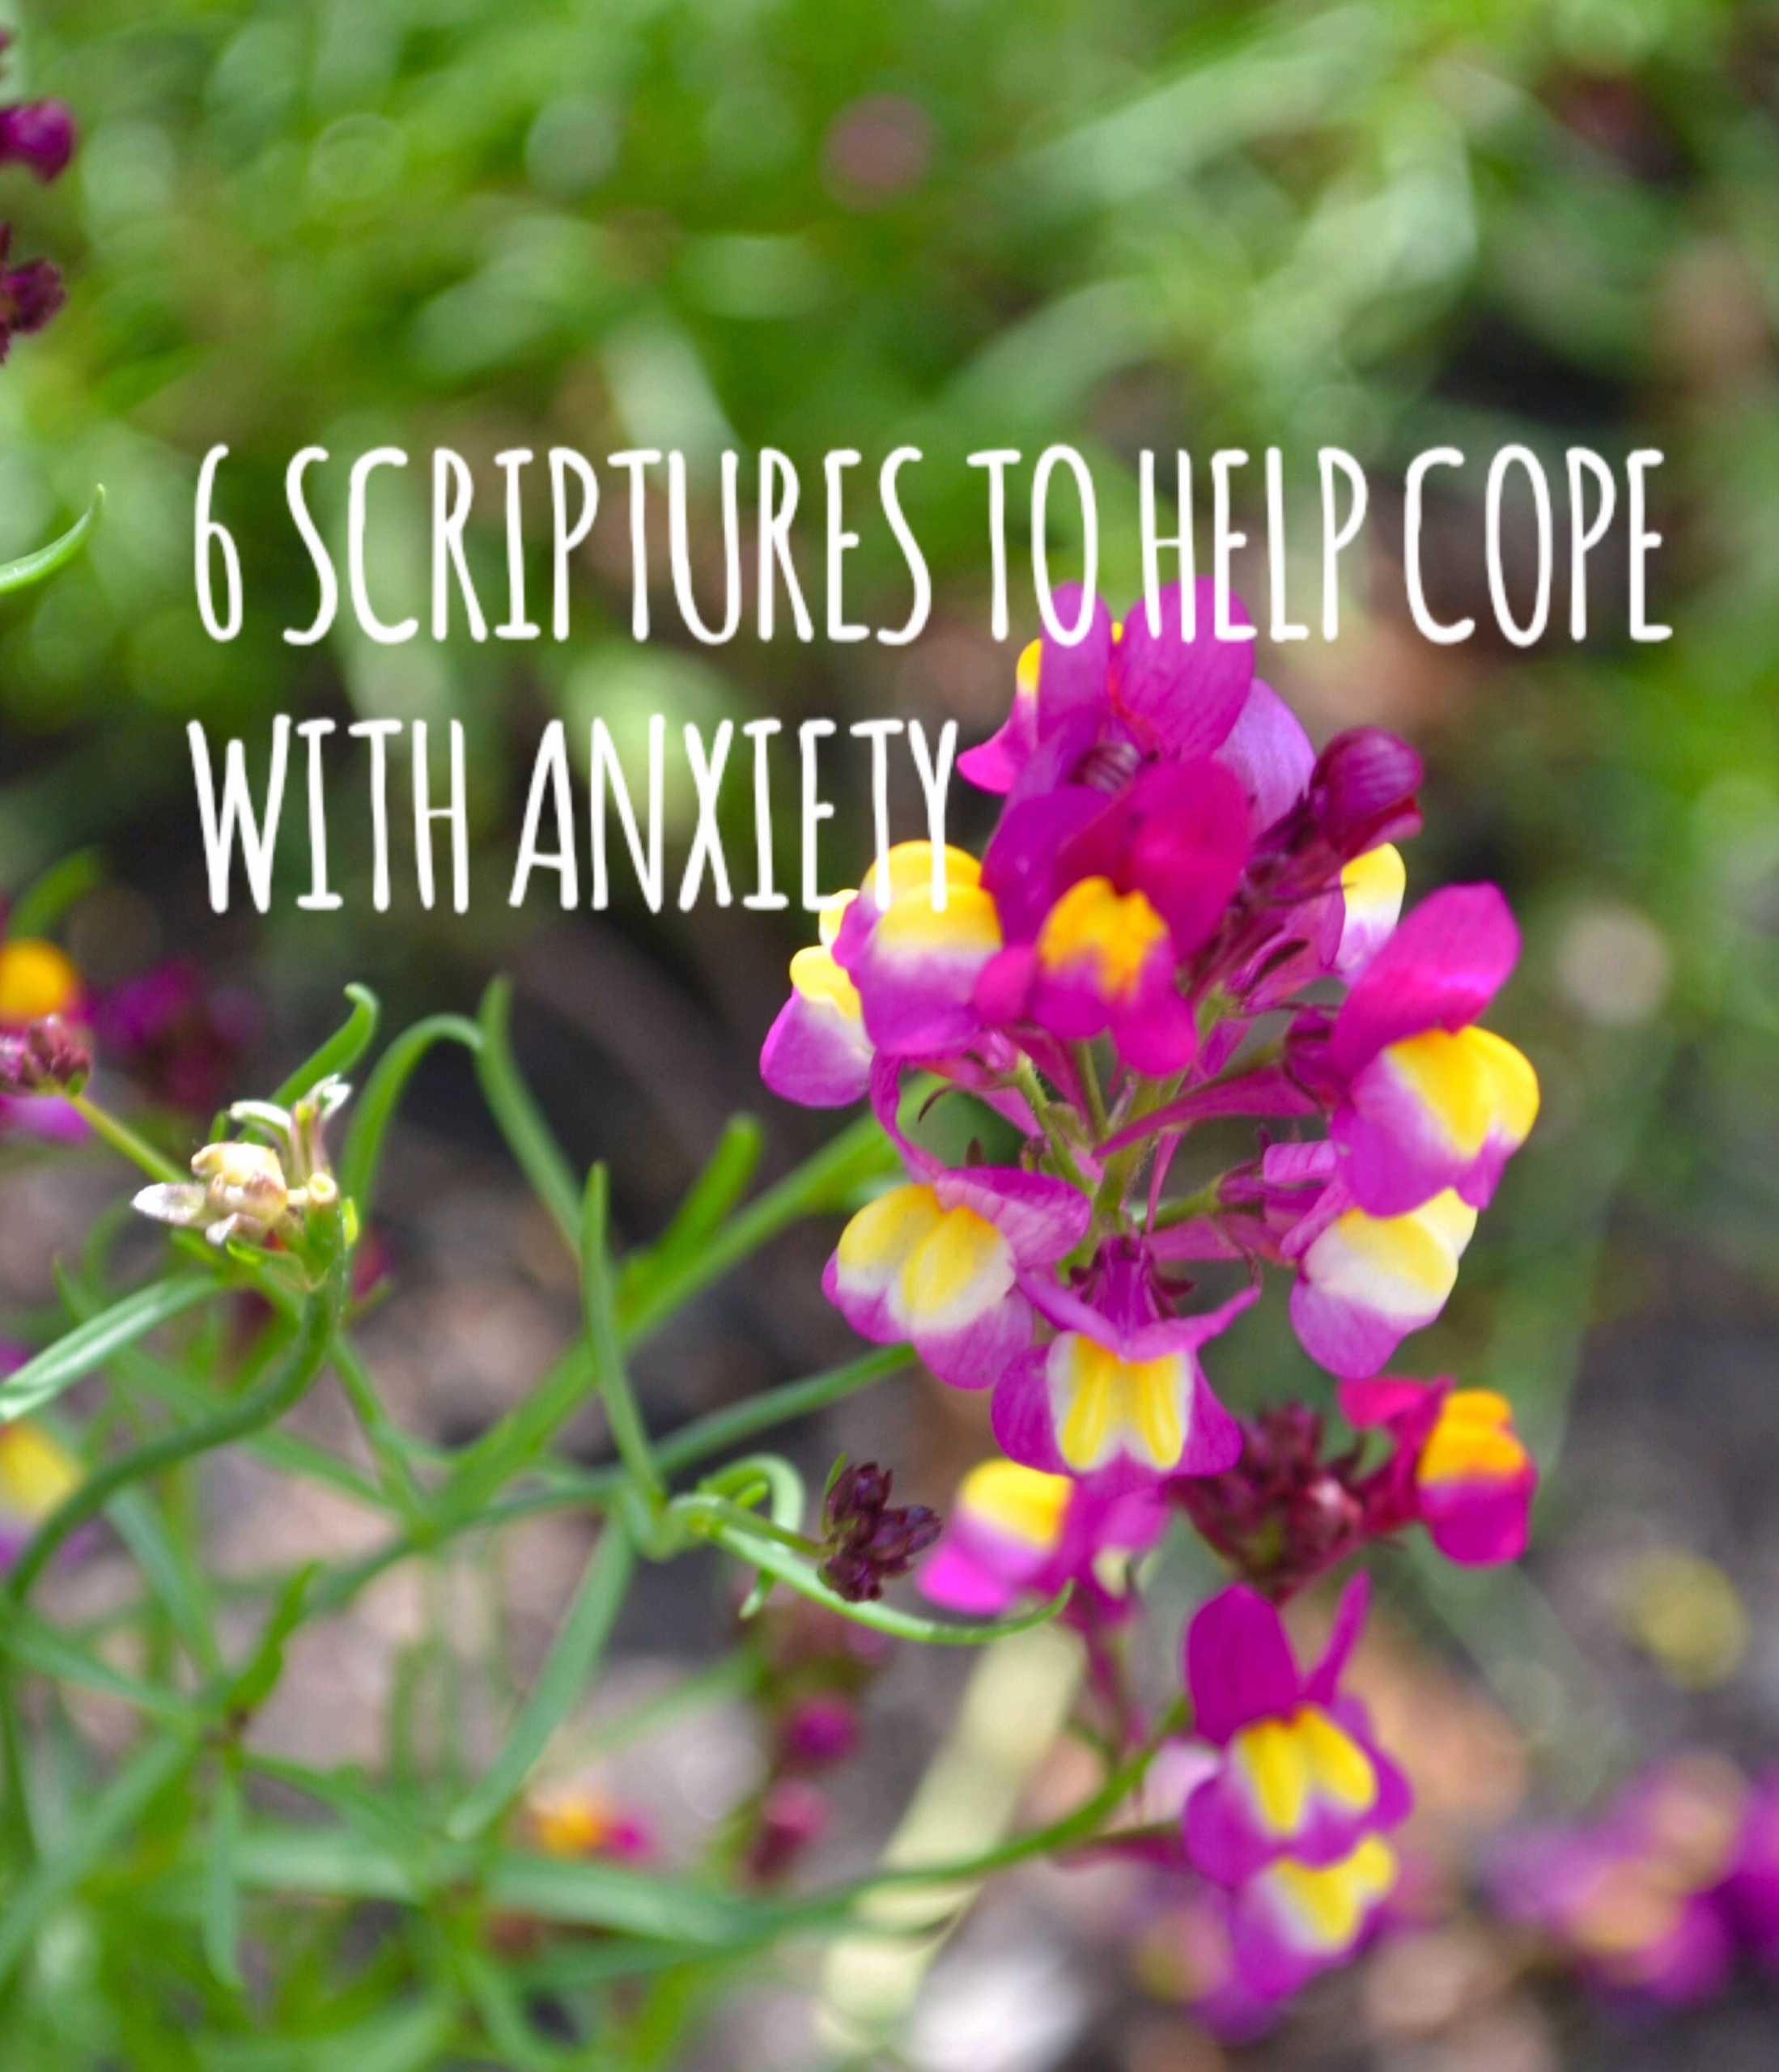 6 SCRIPTURES TO HELP YOU COPE WITH ANXIETY